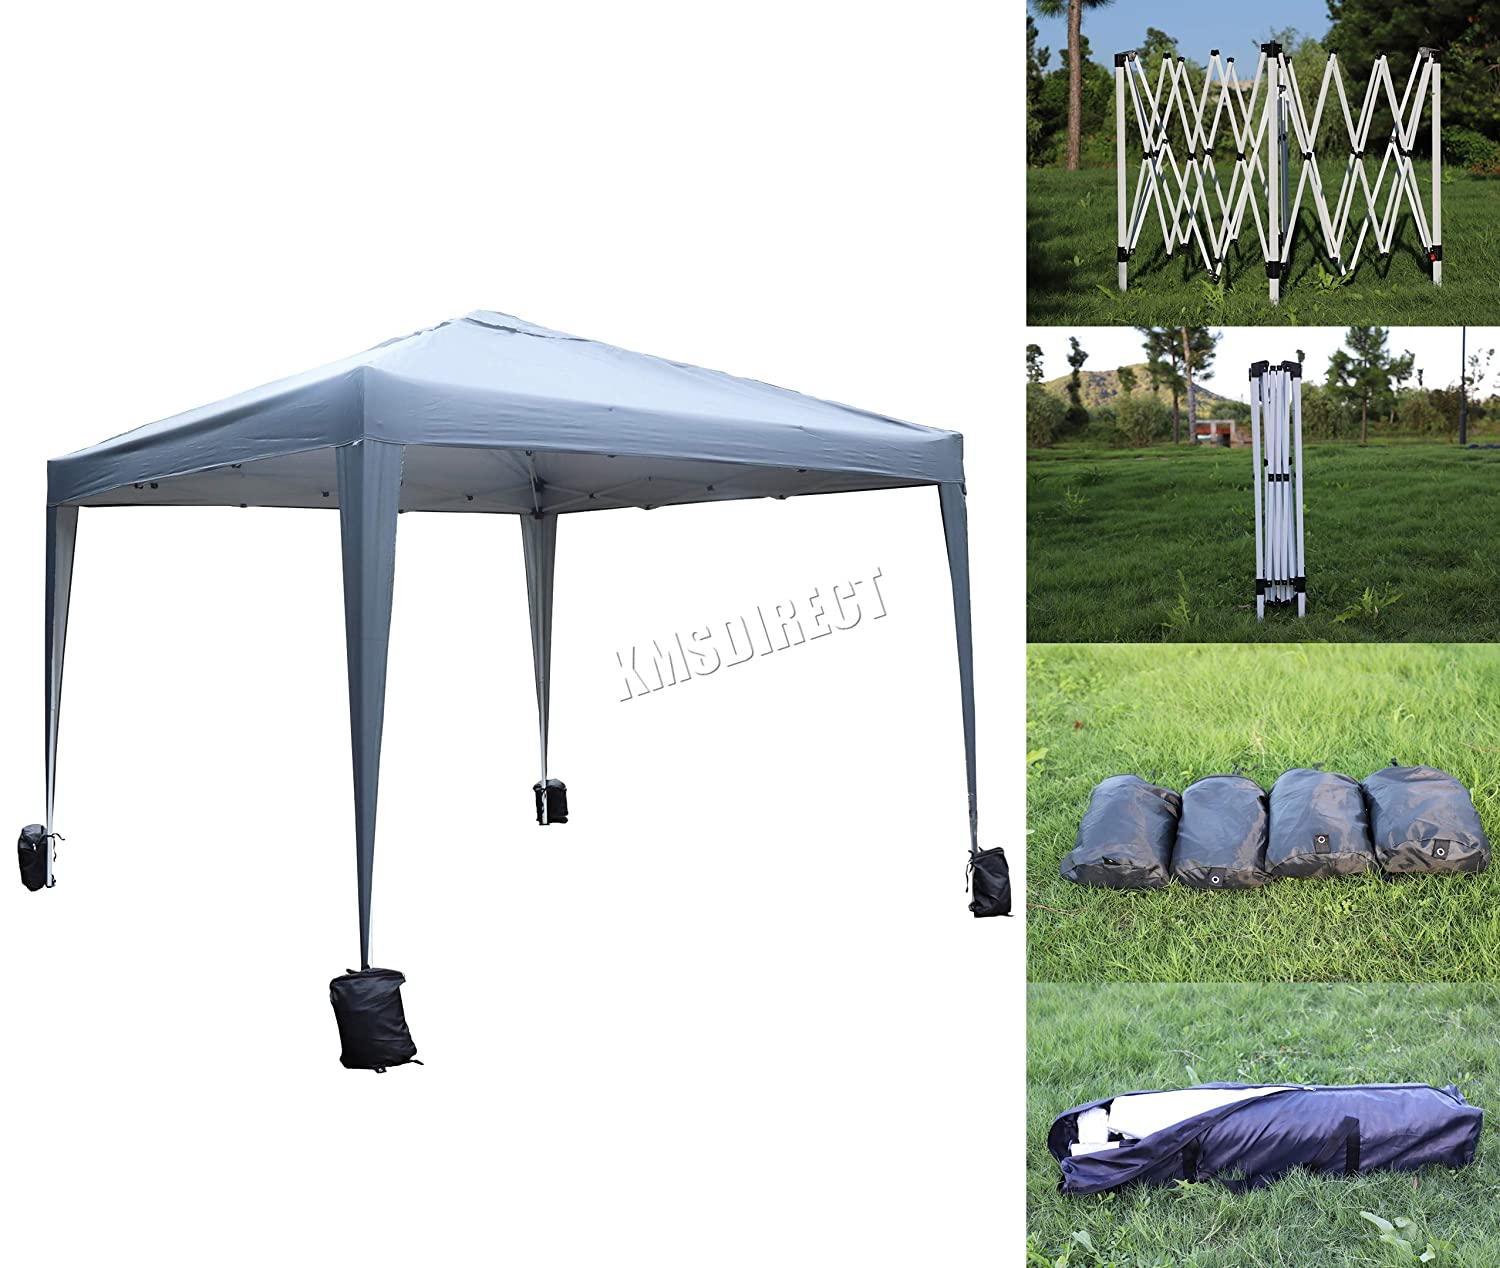 FoxHunter Waterproof 3m x 3m Pop Up Gazebo No Sidewalls Marquee Garden Awning Party Tent Canopy 300D Polyester Powder Coated Steel Frame 4 Weight Bags PUG02 Grey KMS